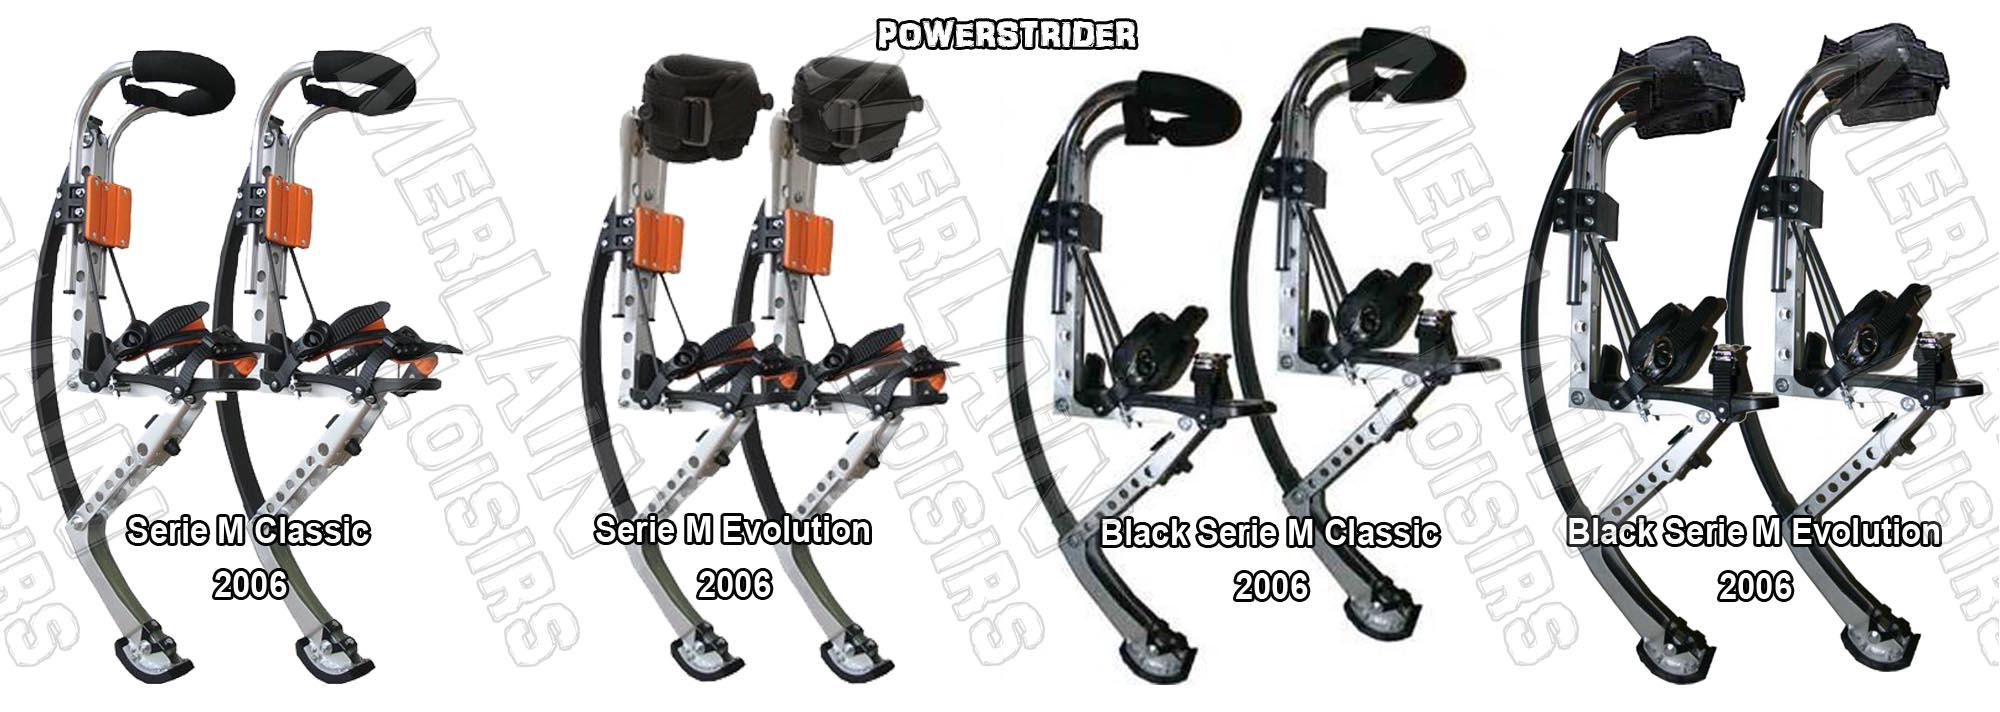 powerstrider adulte classic evolution black serie M 2006 echasses urbaines